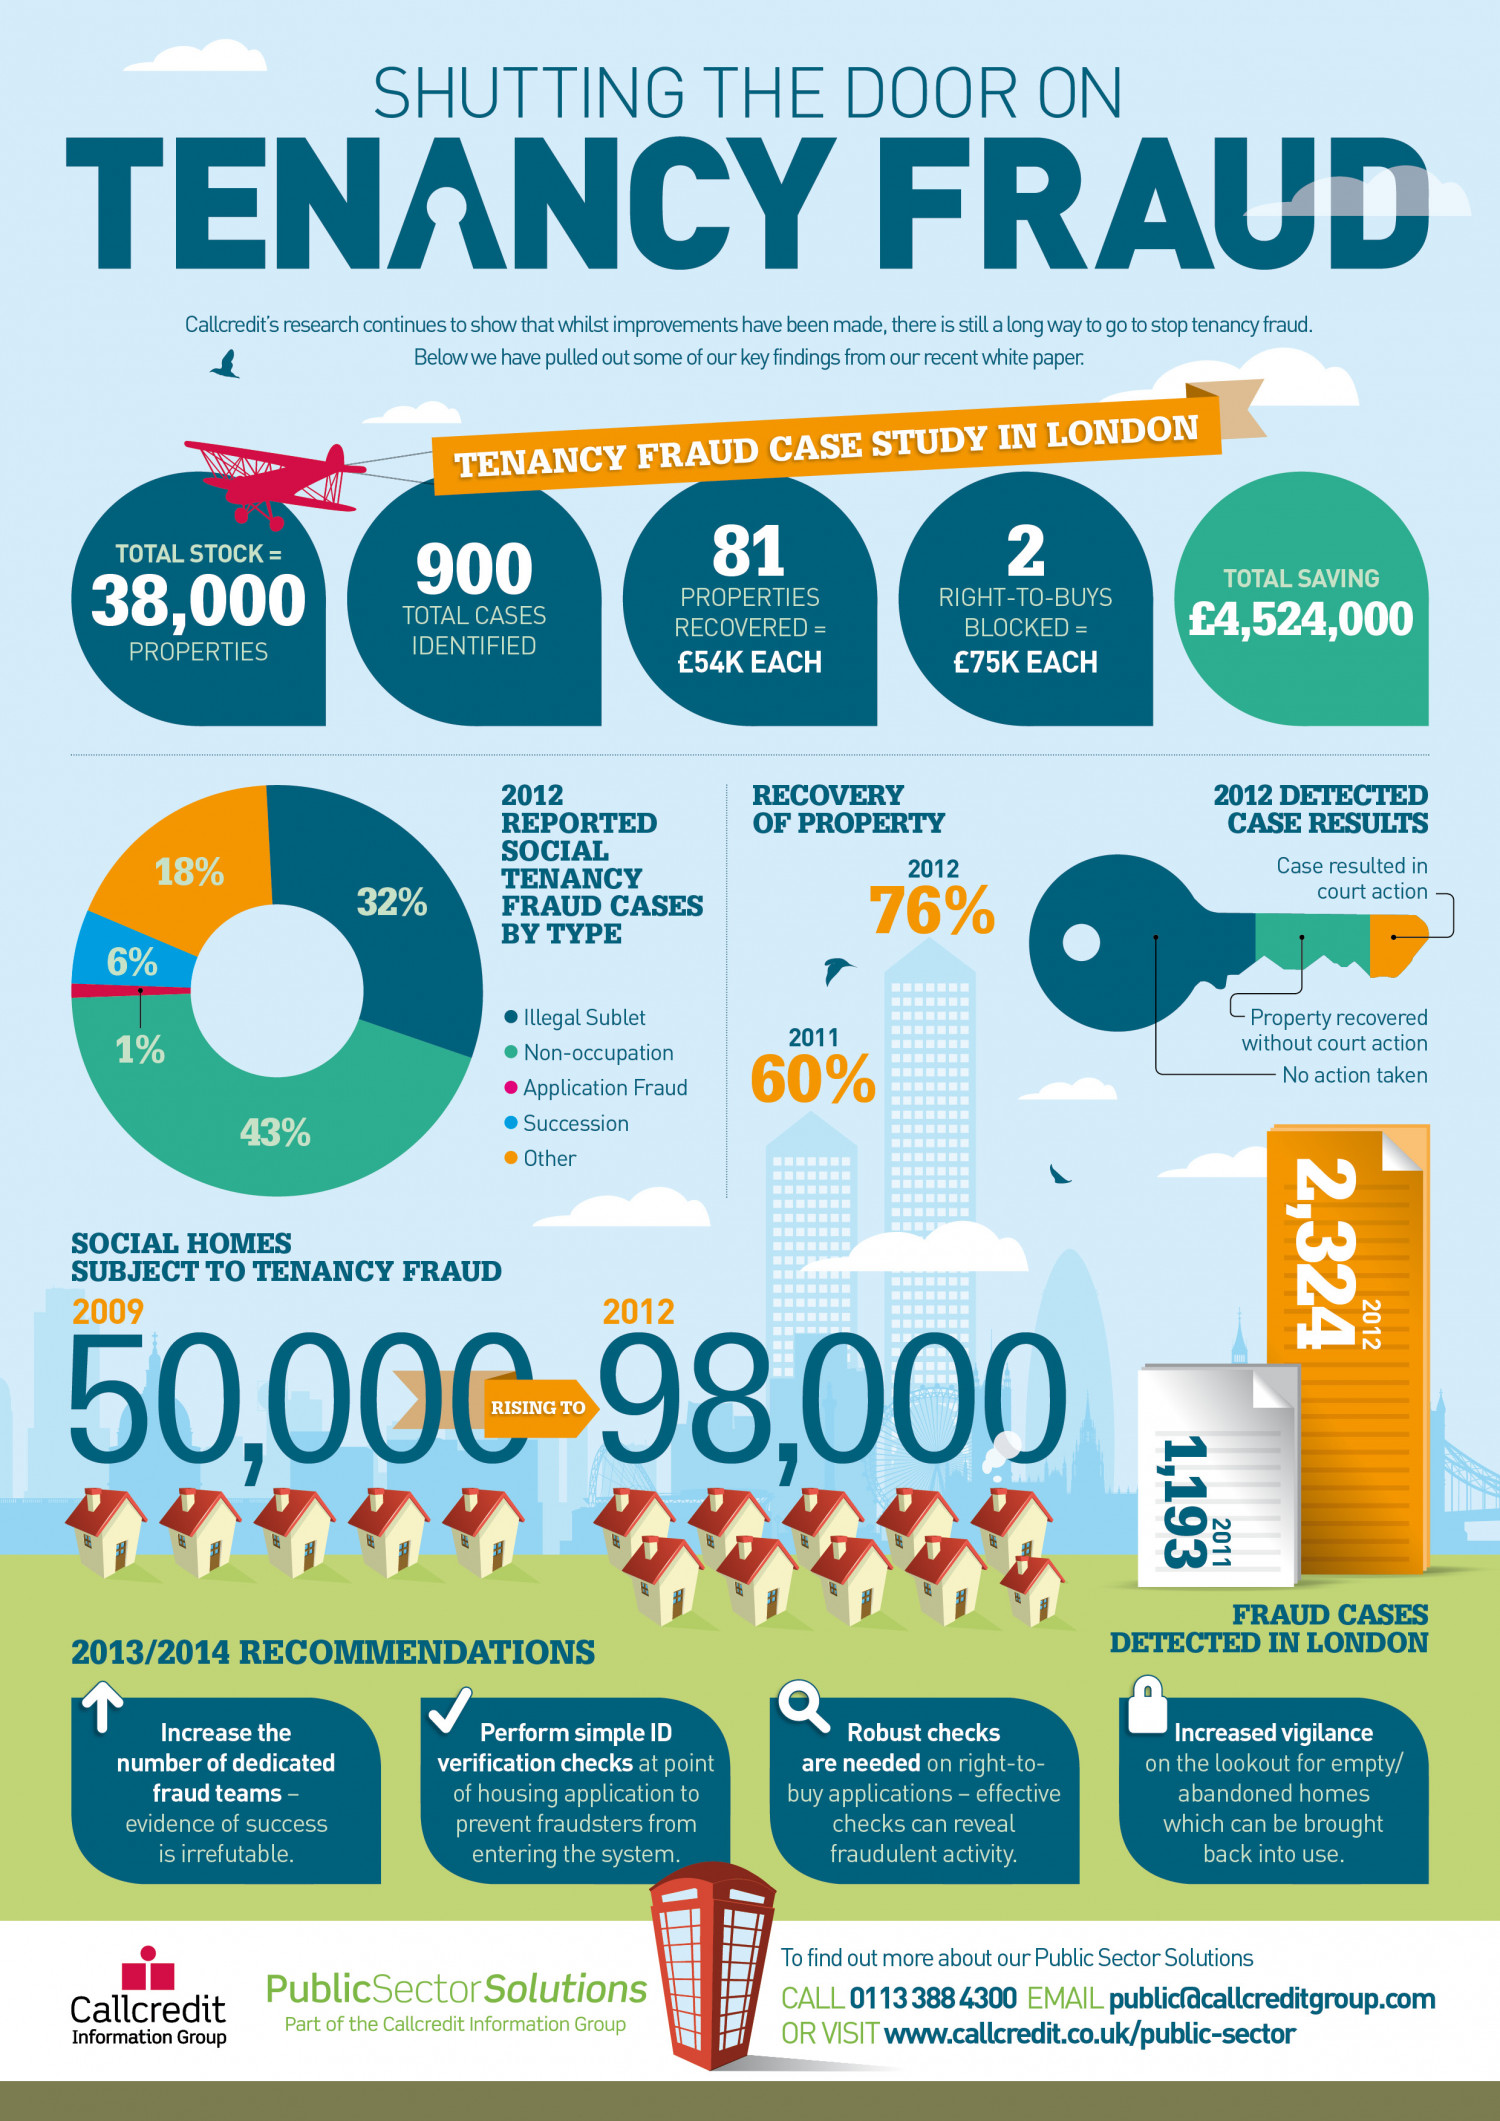 Shutting the door on Tenancy Fraud Infographic